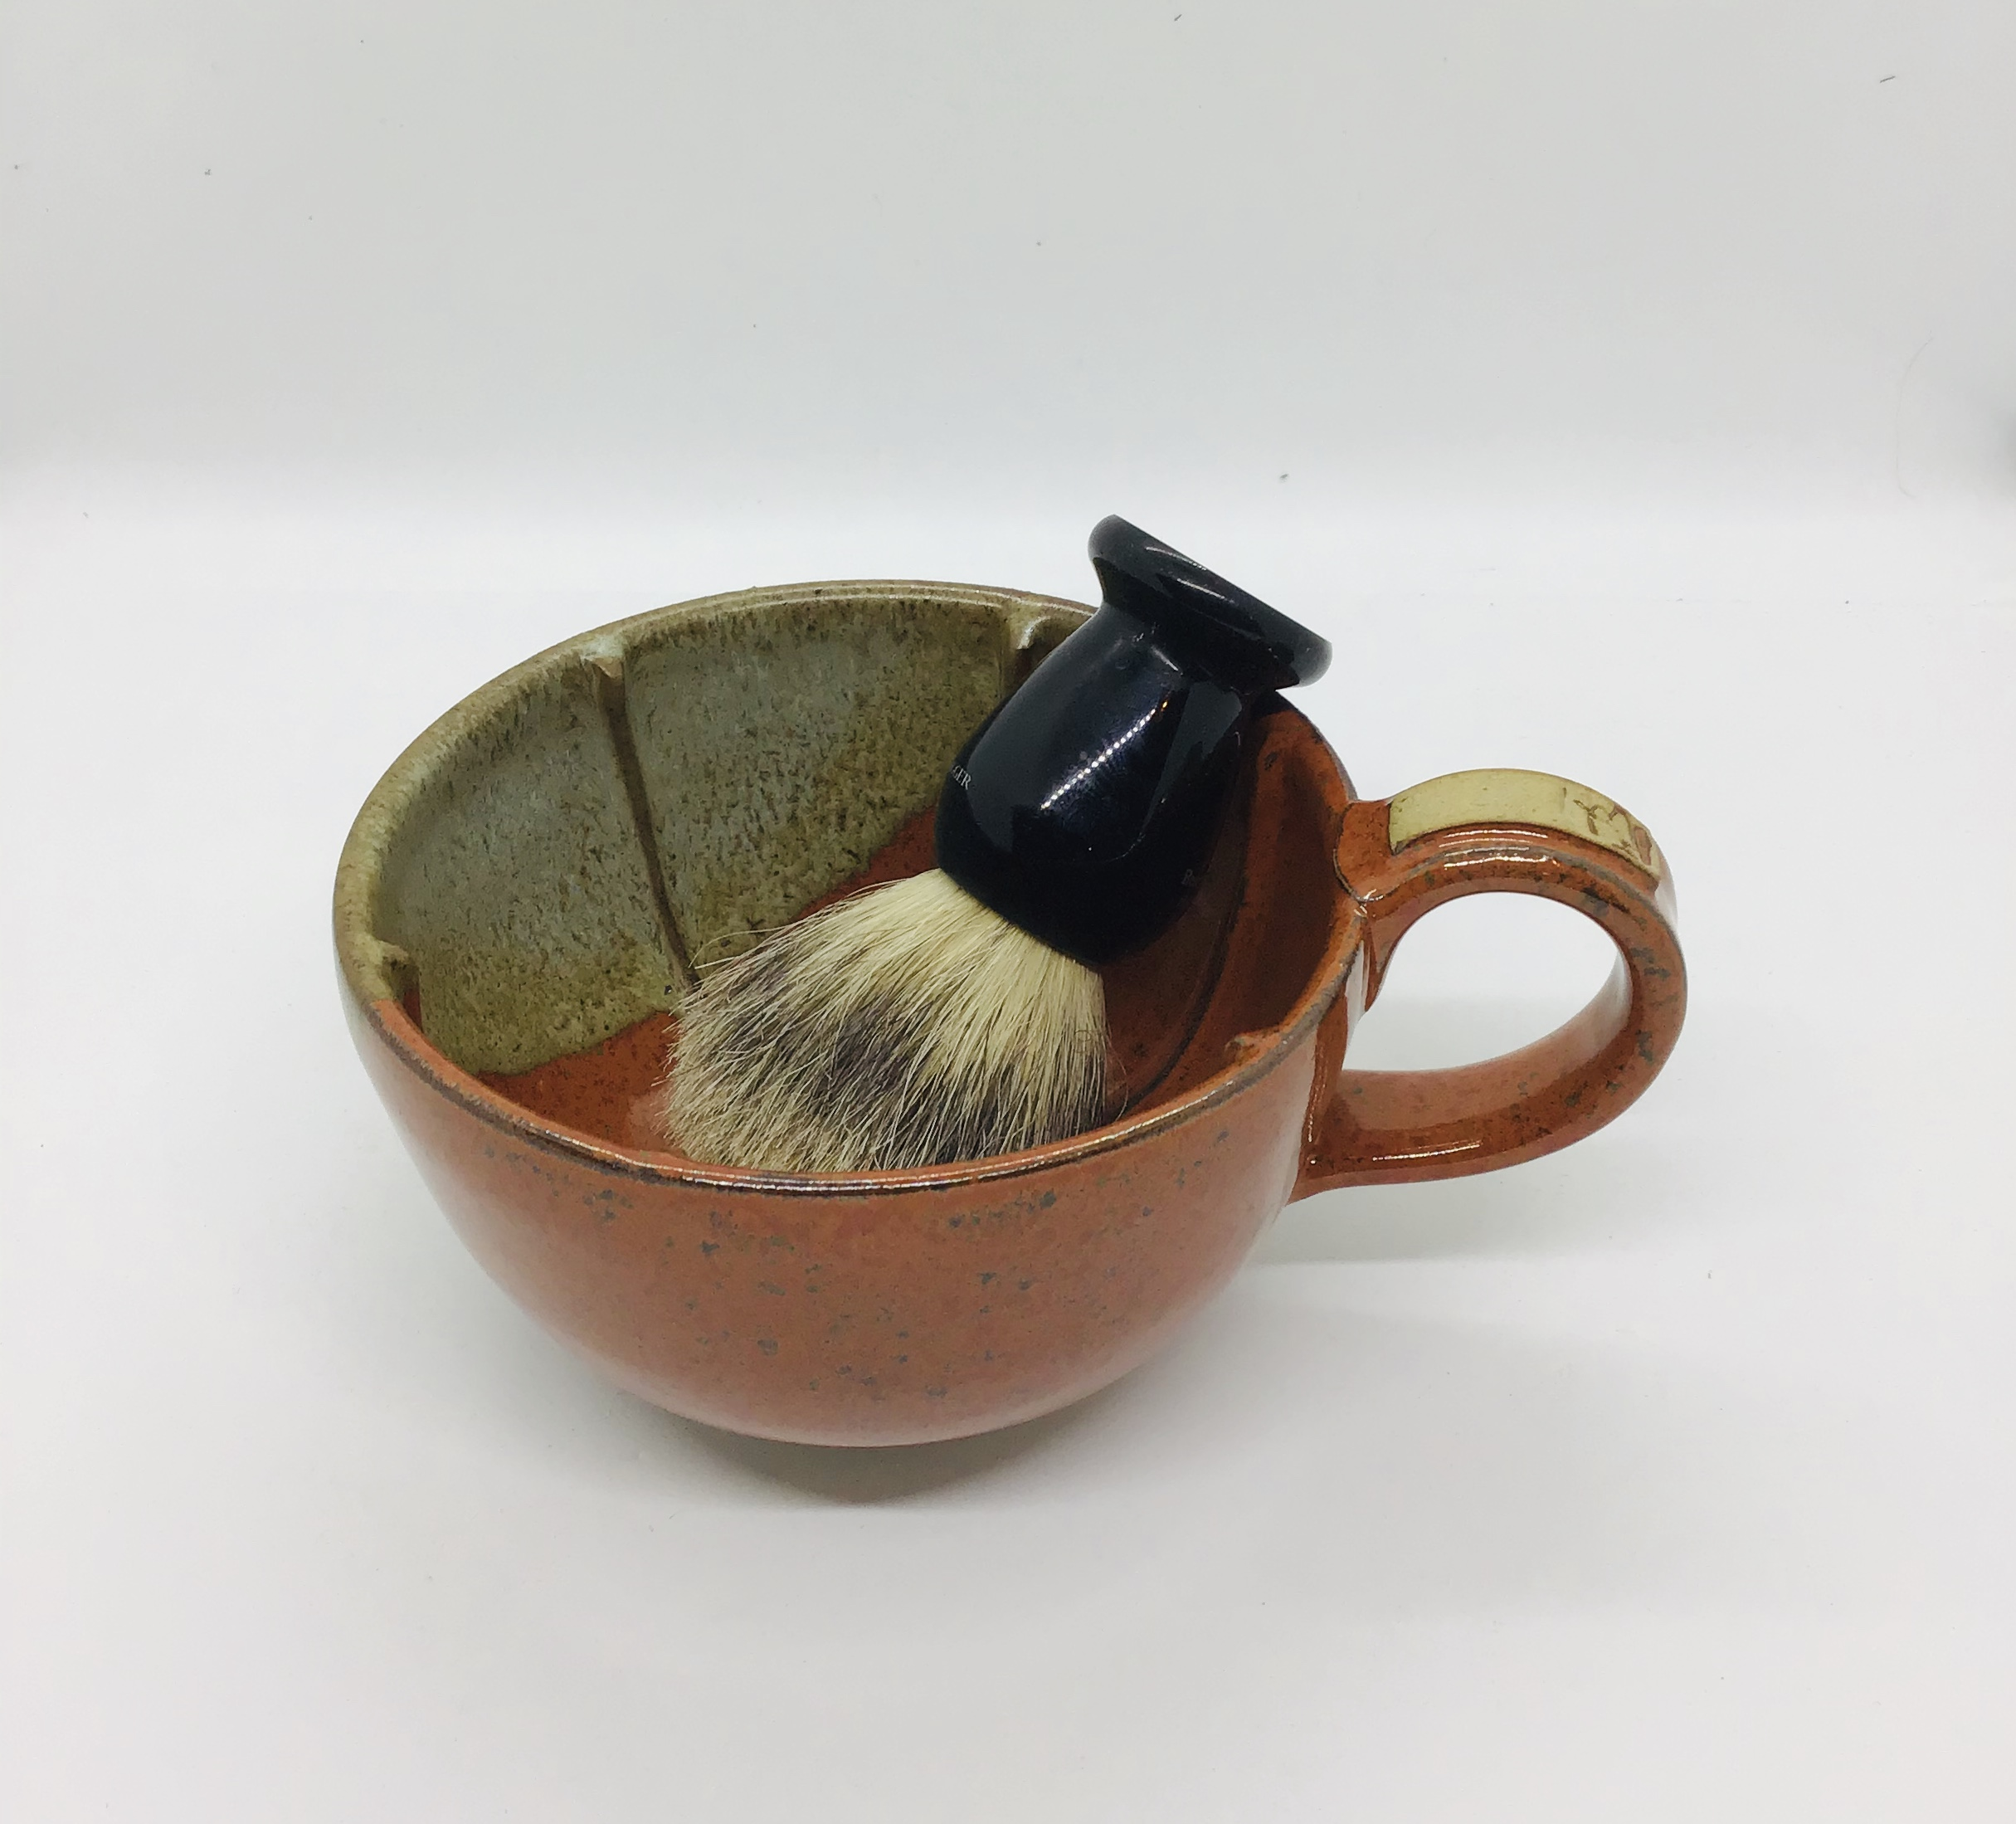 Shaving mug/bowl red/brown earthenware